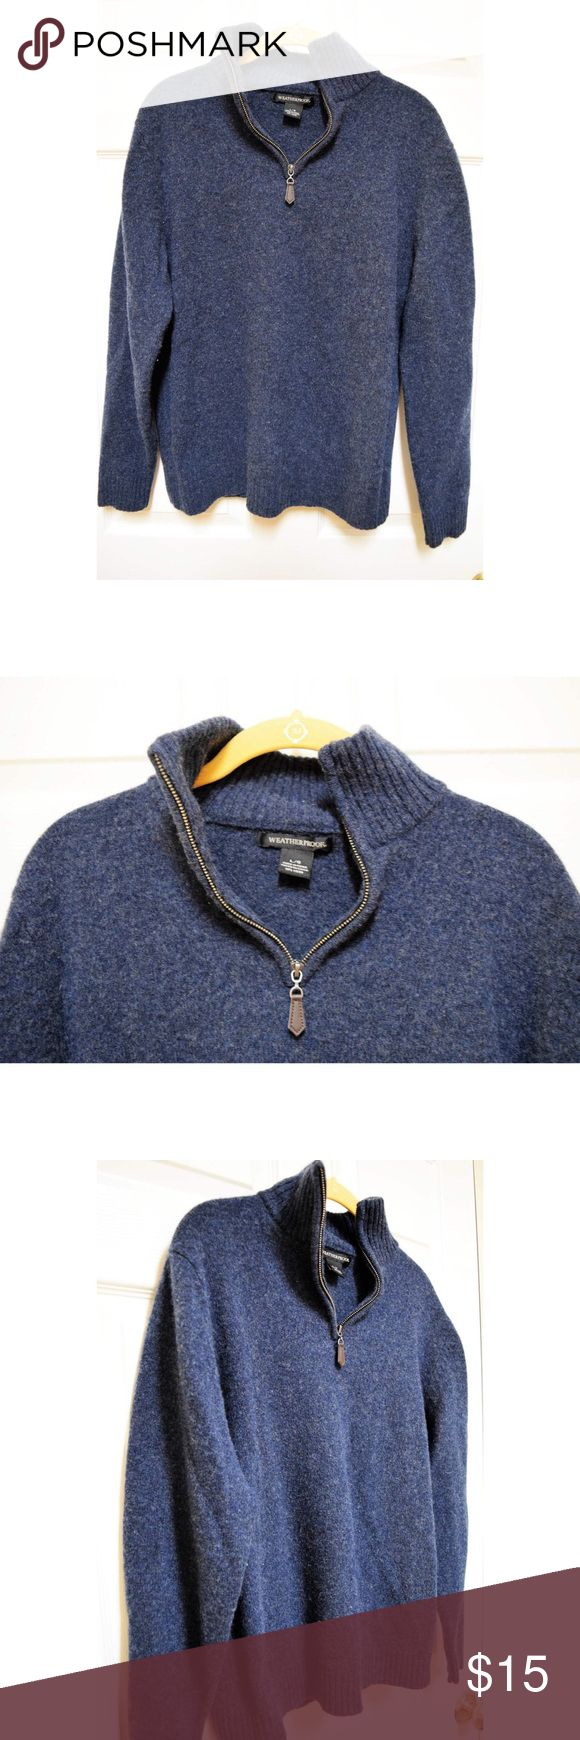 Weatherproof 100% Lambswool Half Zip Pullover Men's Navy Pullover Sweater from Weatherproof featuring half zip detailing and leather zipper accent. Excellent used condition. Size L Weatherproof Sweaters